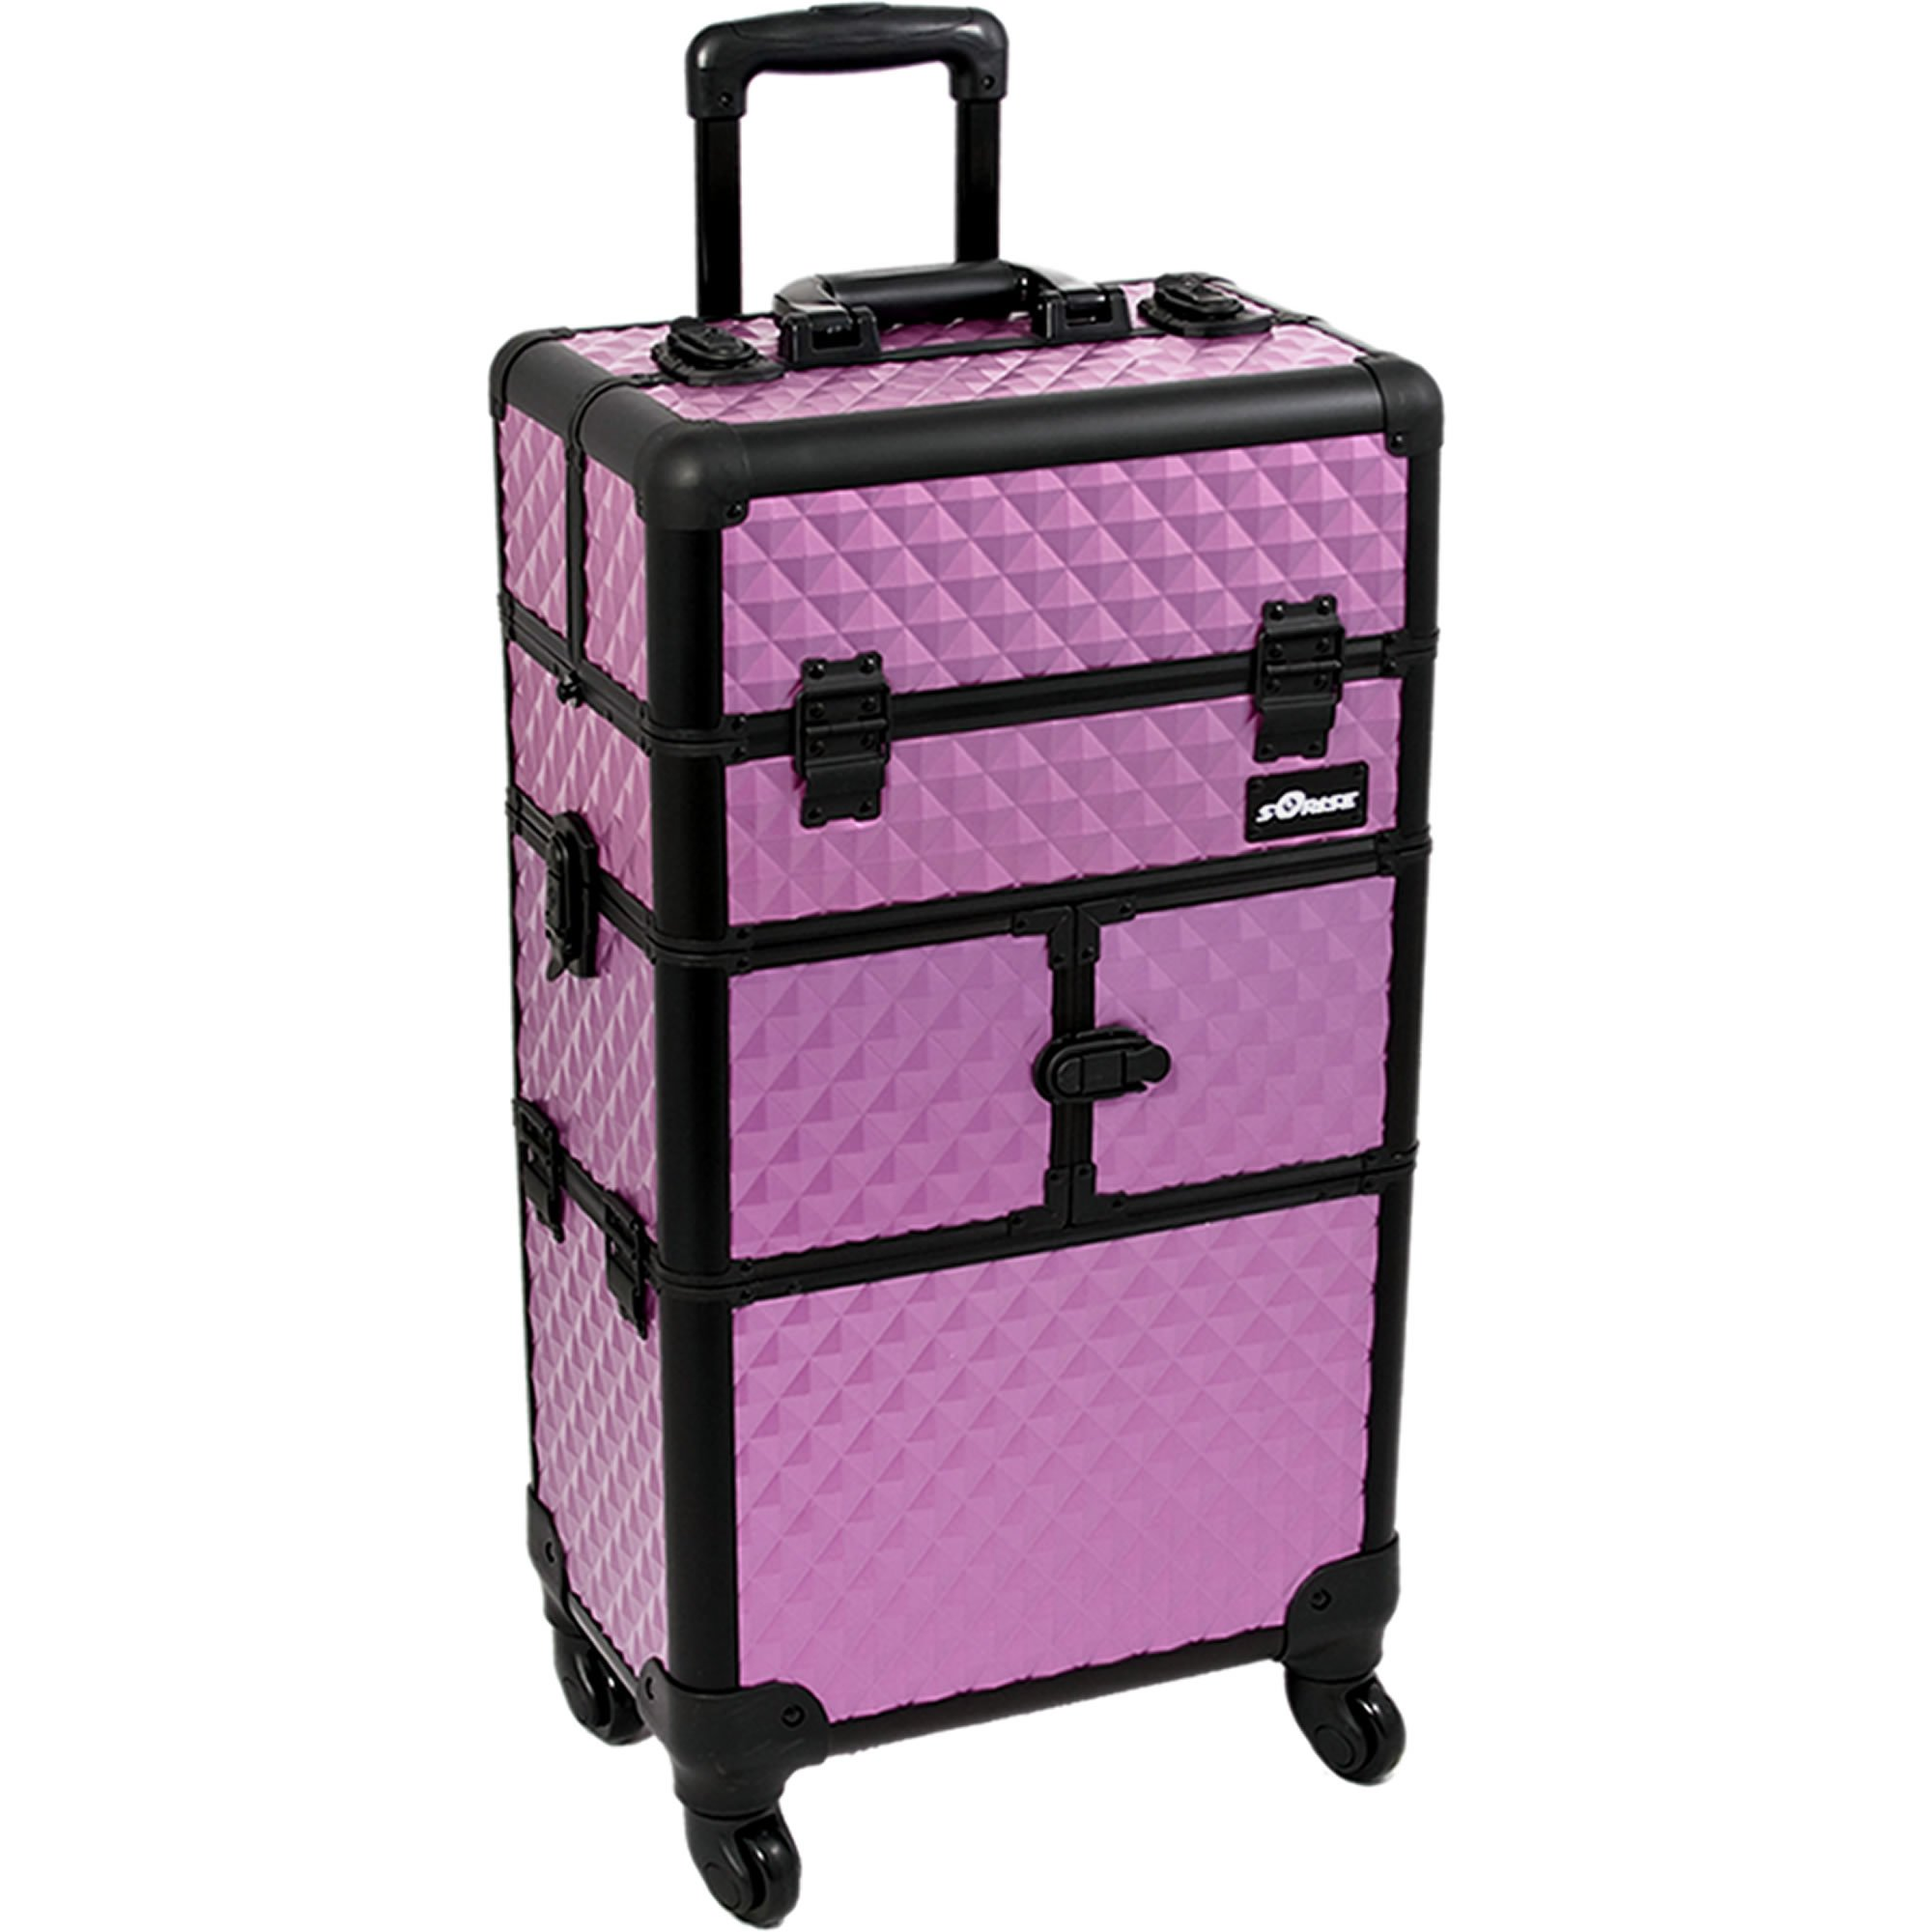 SUNRISE Makeup Rolling Case 2 in 1 I3764 Professional Hair Stylist, 8 Trays, 4 Wheel Spinner, Locking with Mirror and Shoulder Strap, Purple Diamond